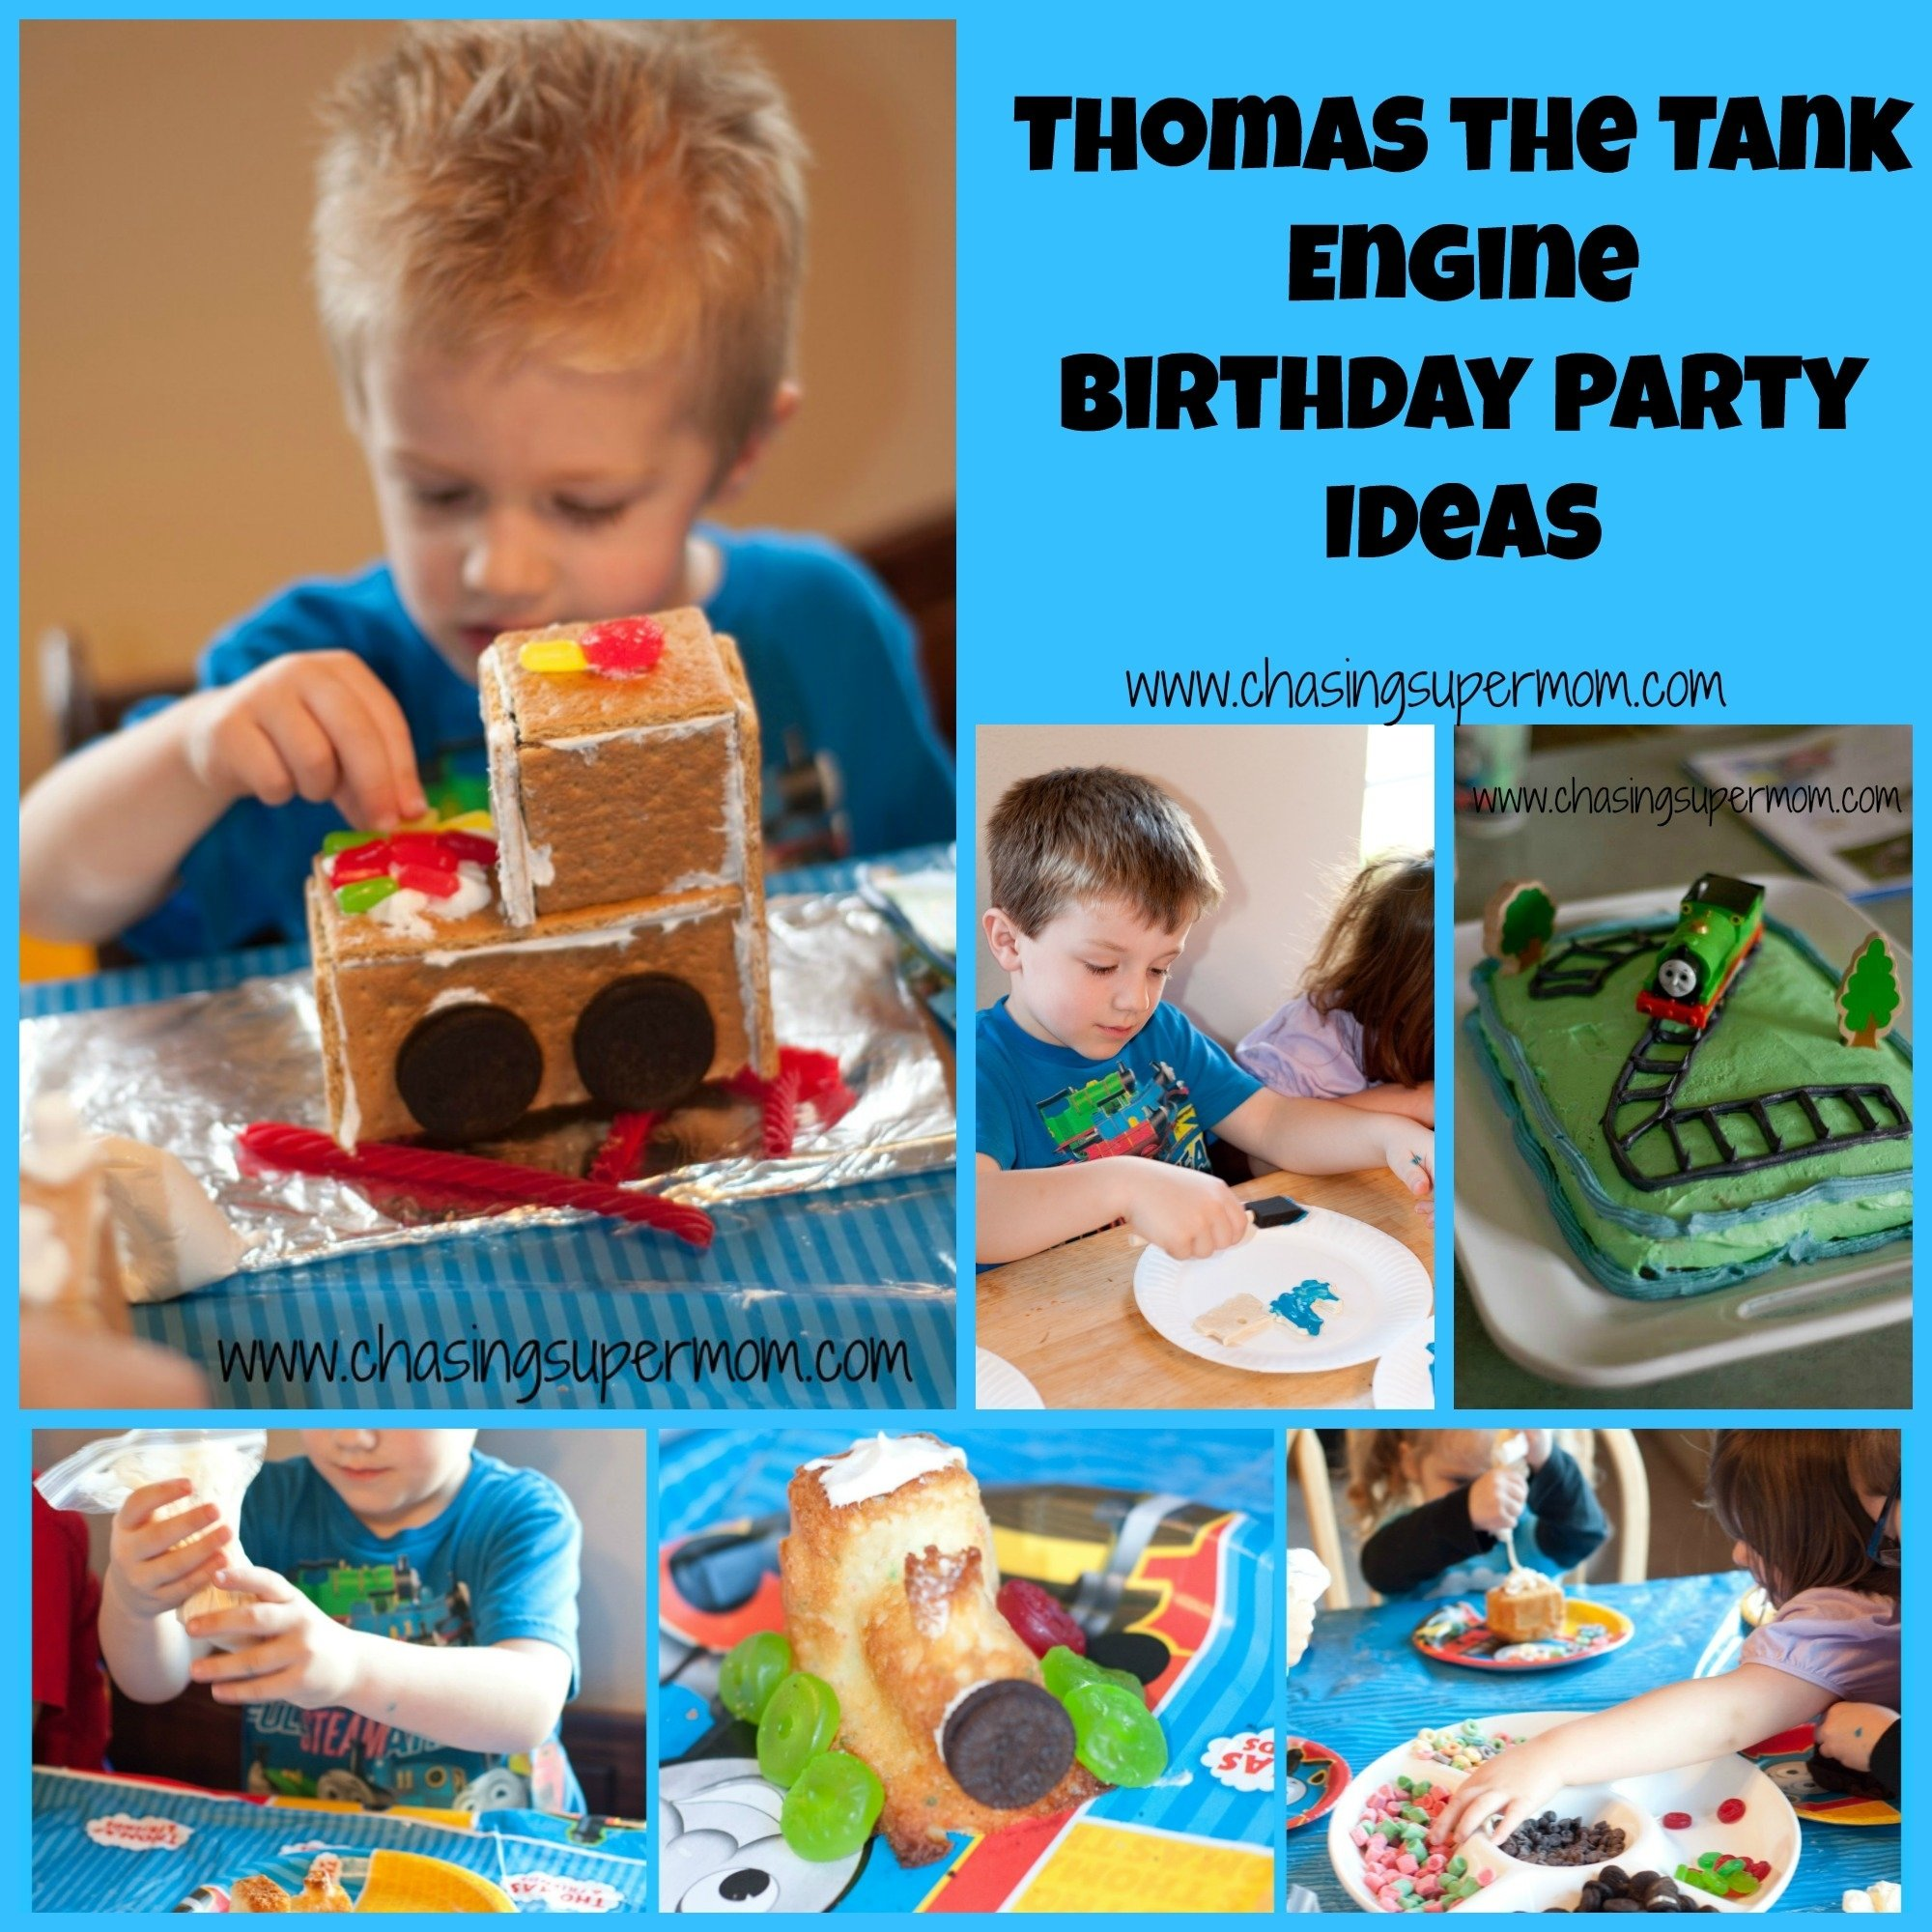 10 Most Recommended Thomas The Tank Engine Party Ideas thomas the tank engine birthday party train party ideas chasing